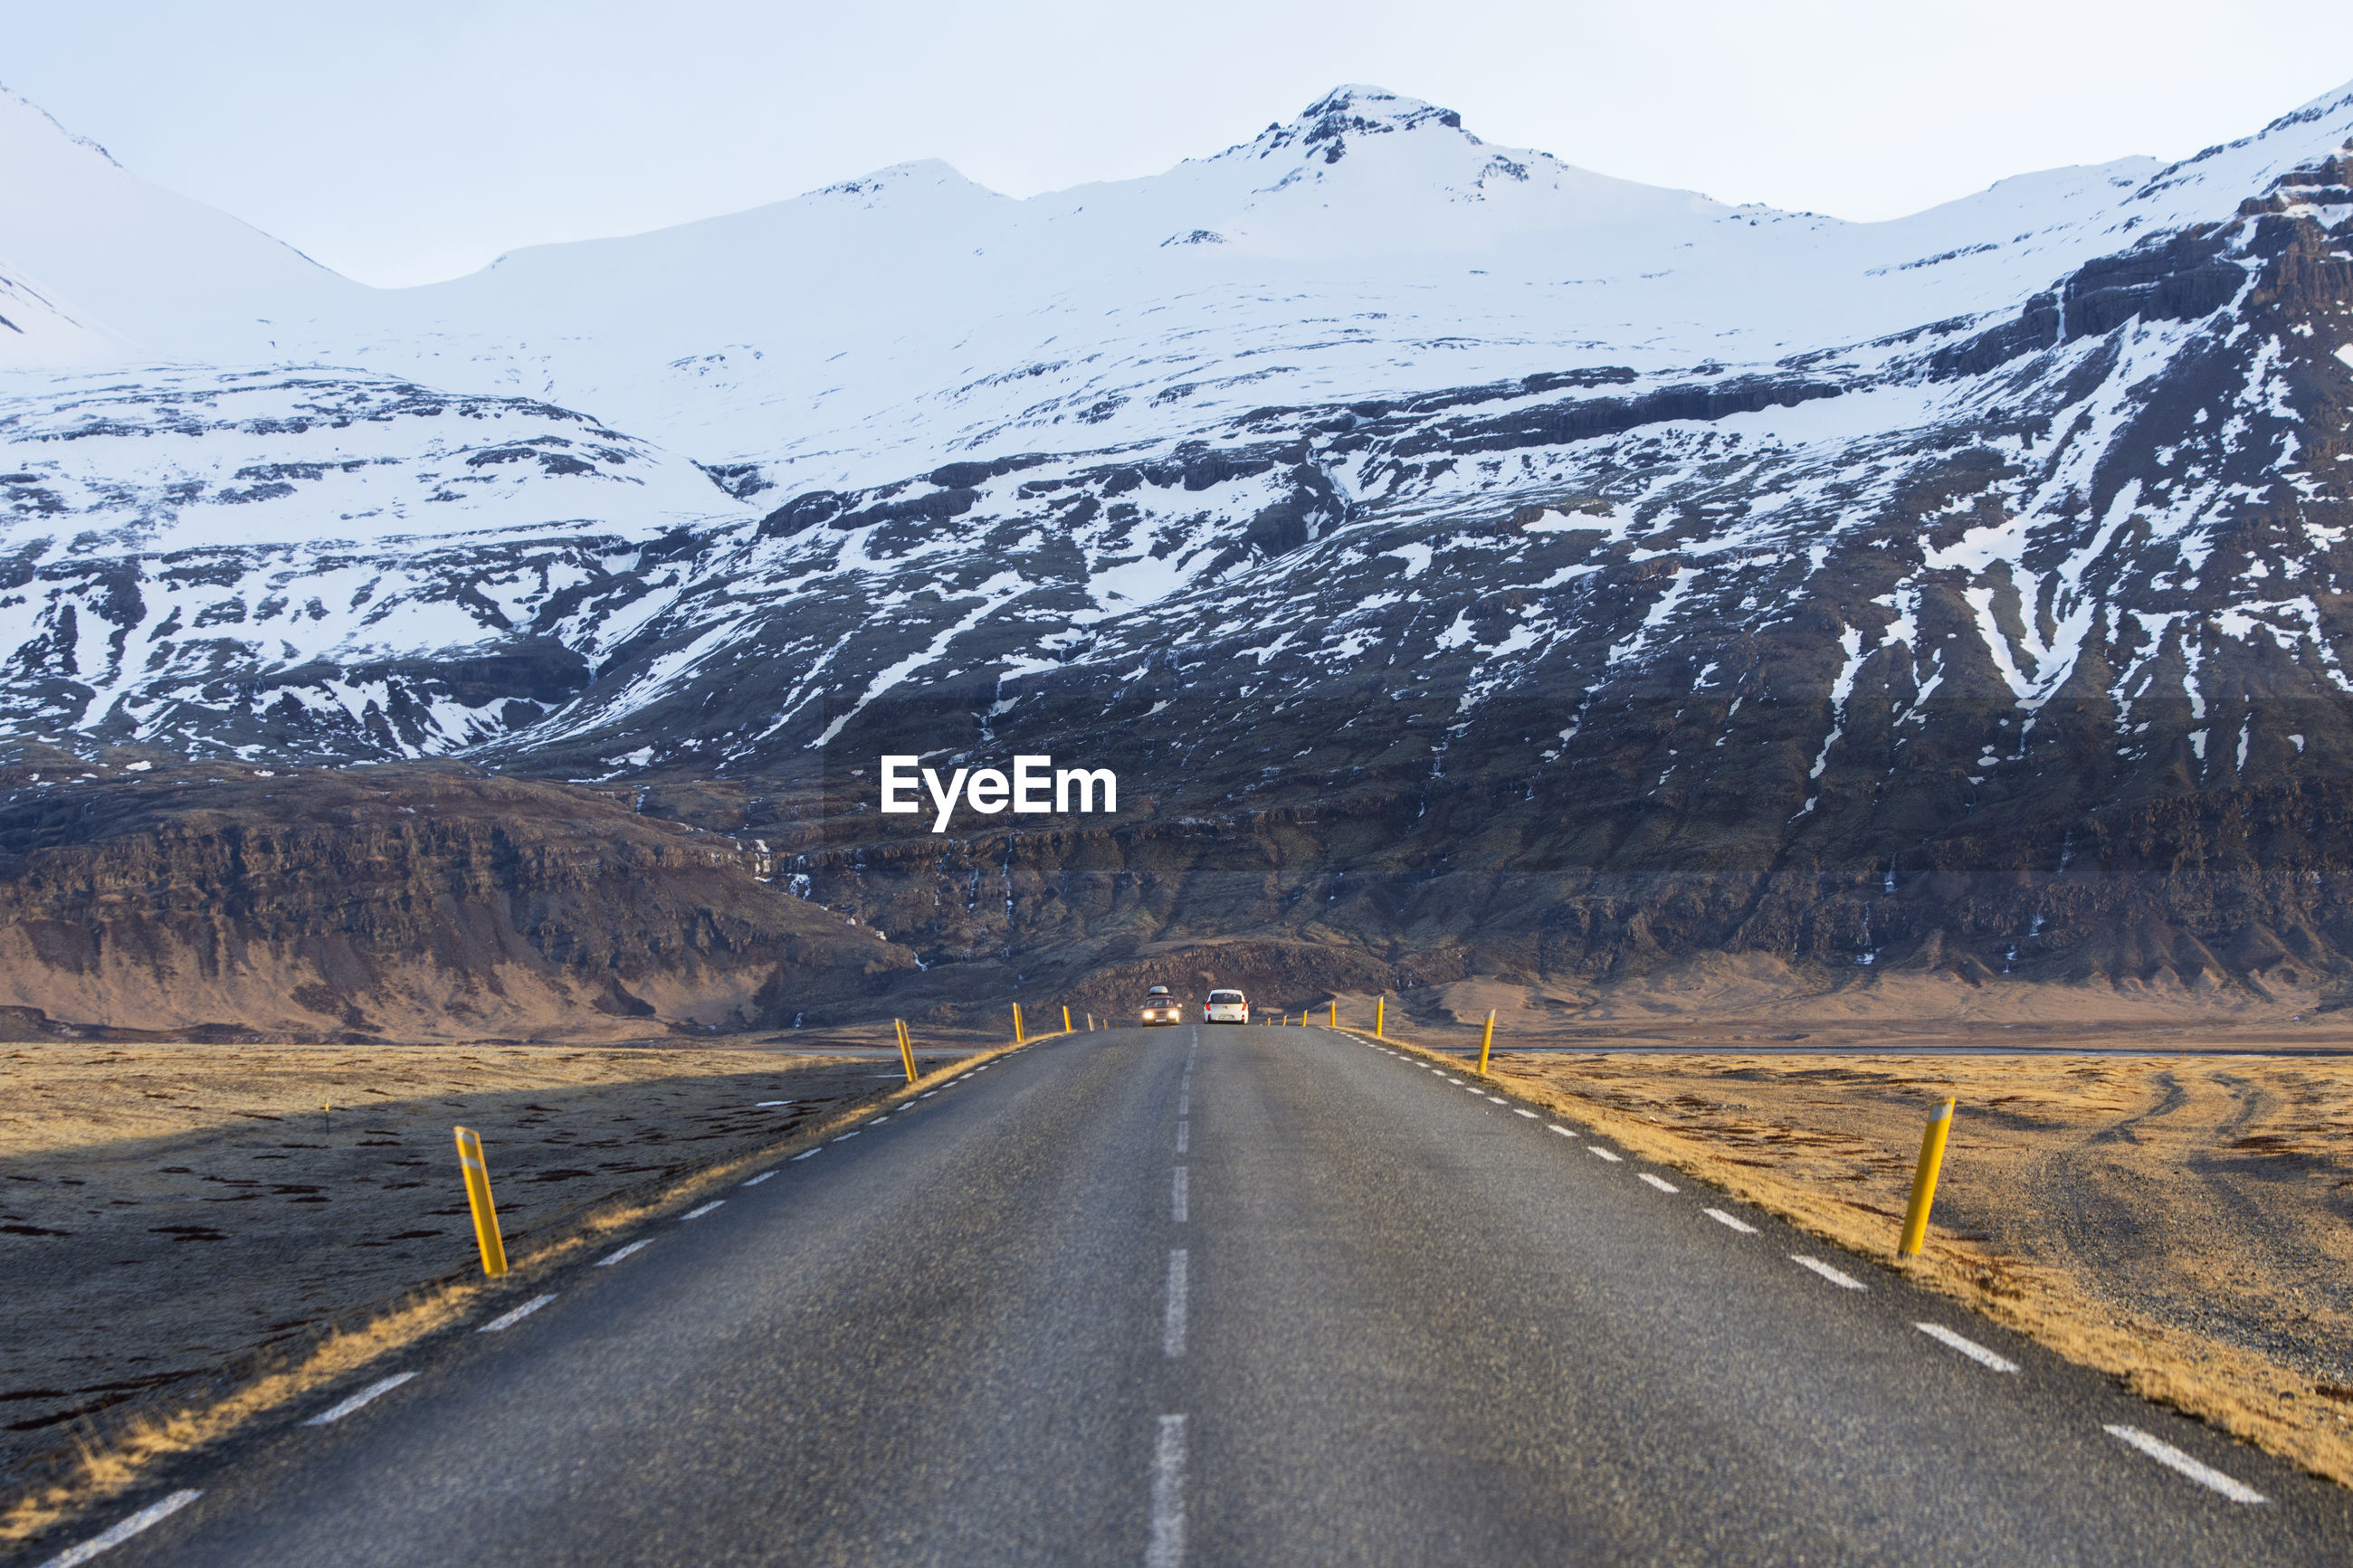 ROAD ON SNOWCAPPED MOUNTAINS AGAINST SKY